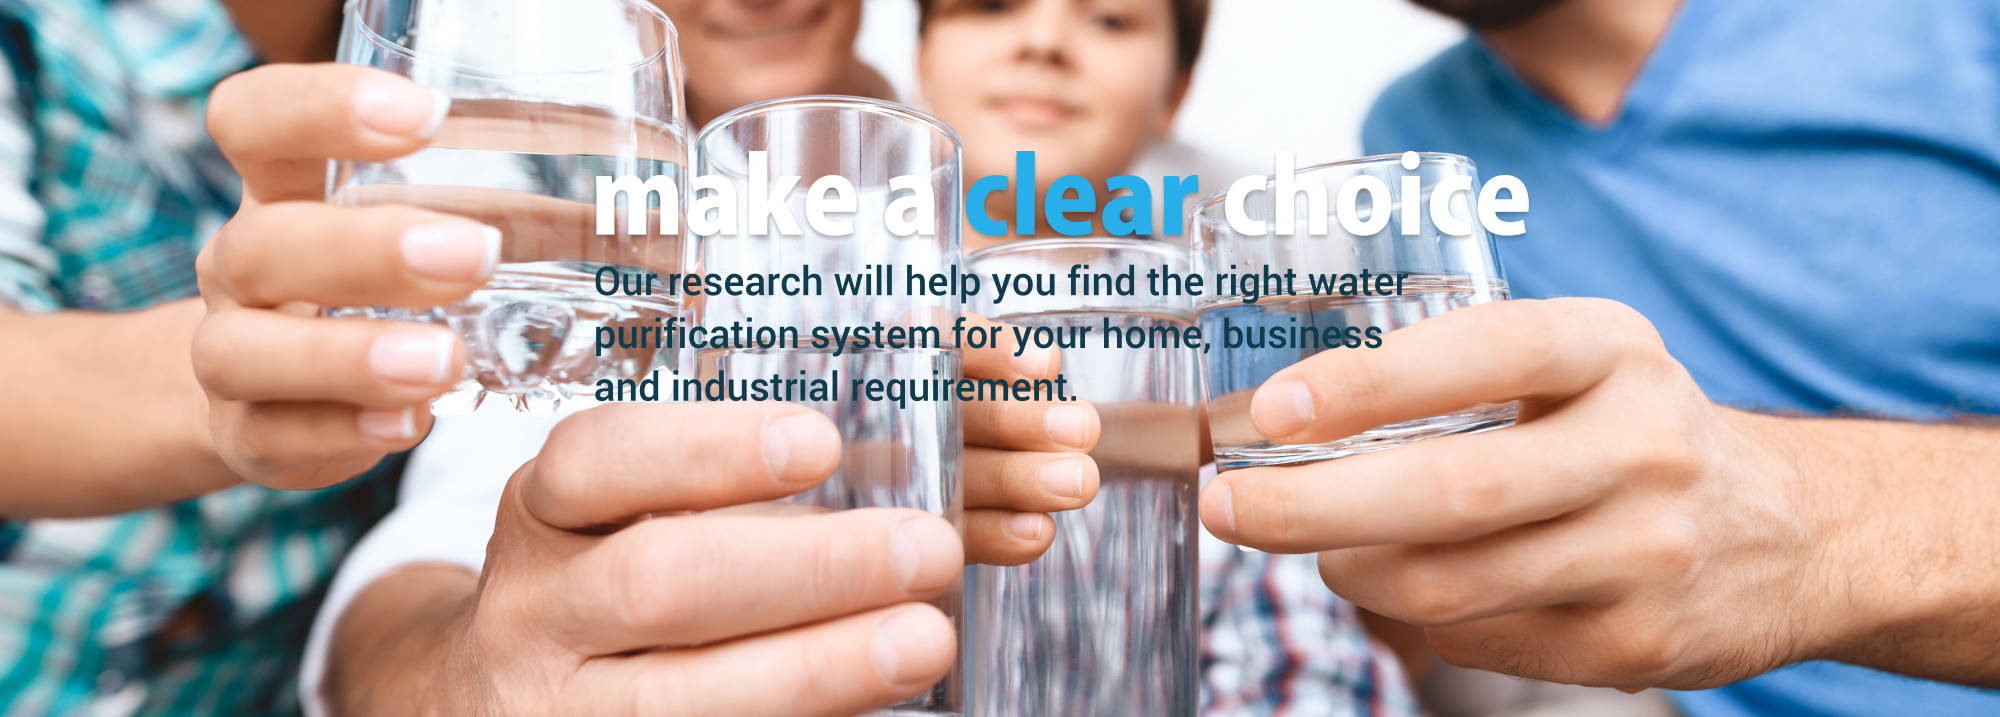 water filtration research make a clear choice